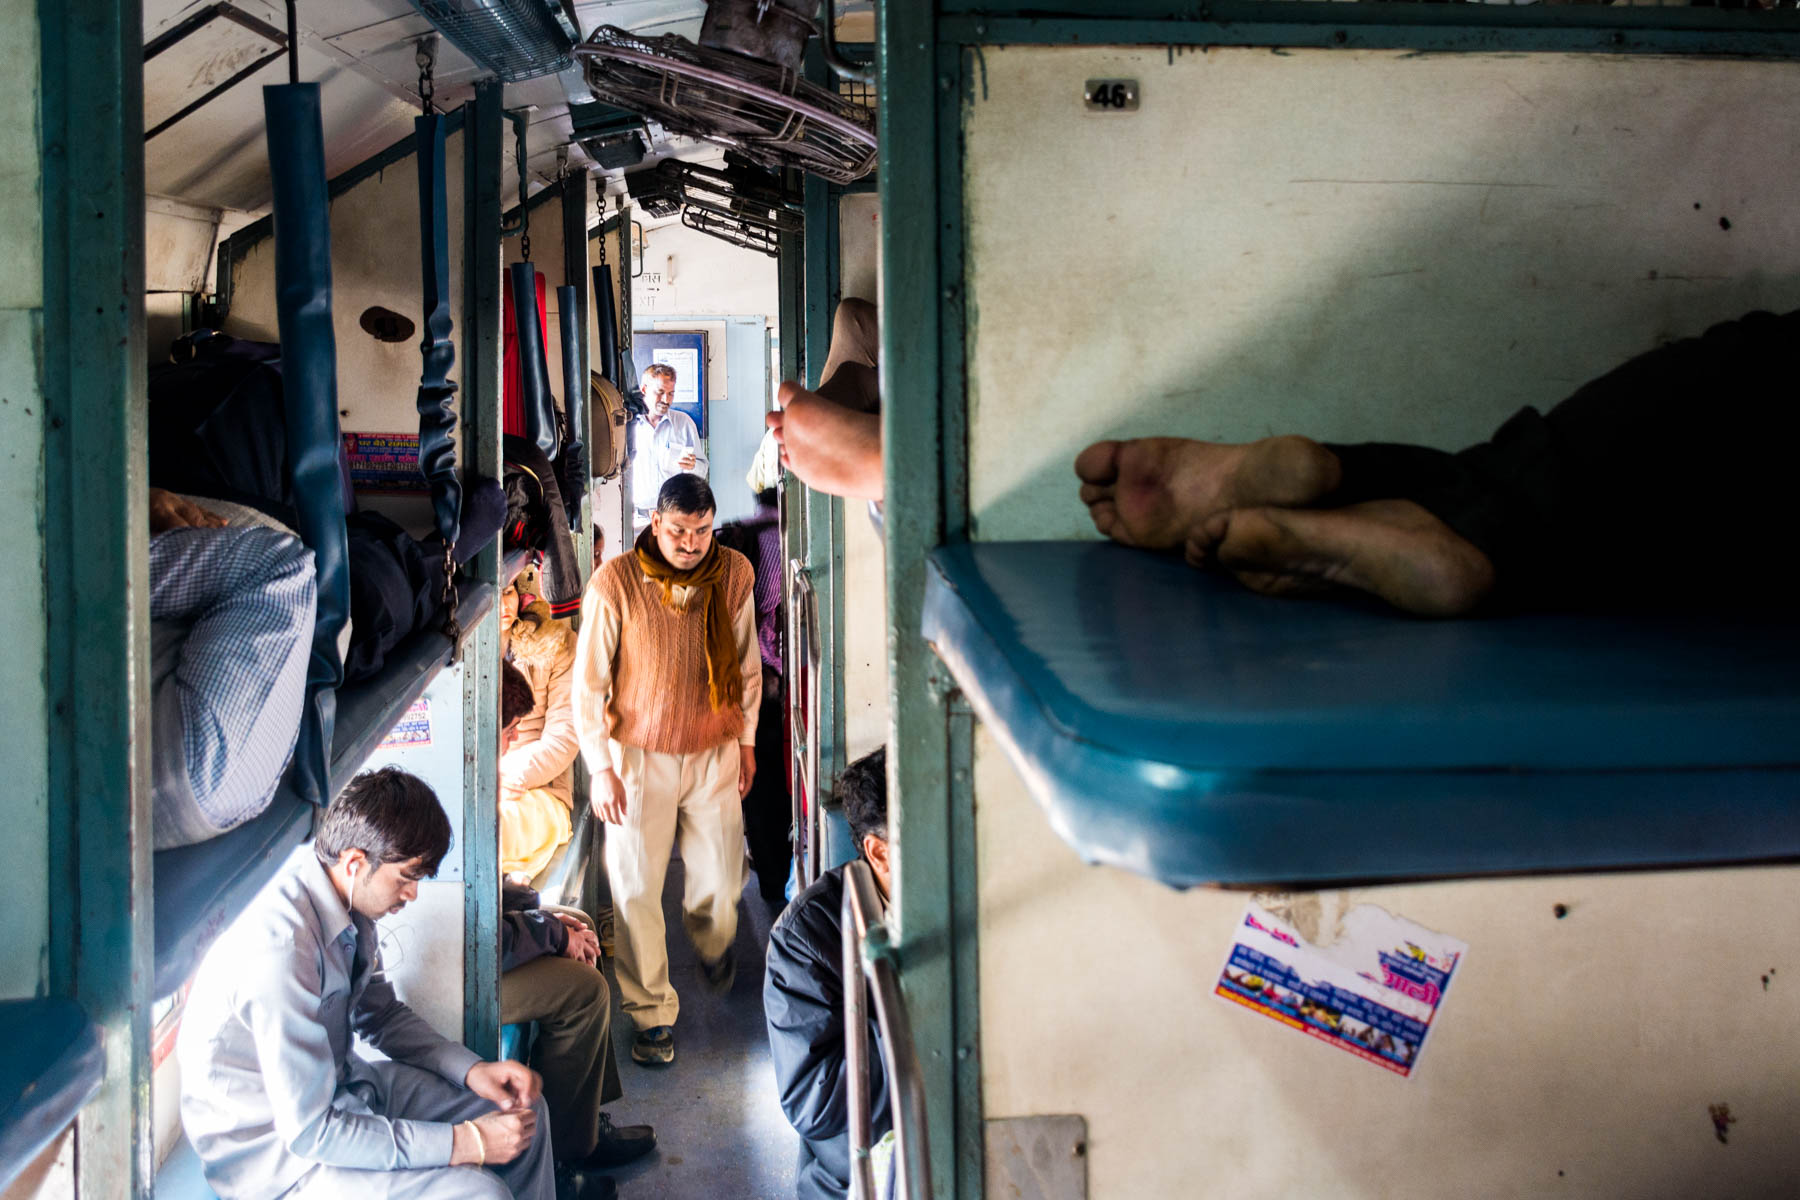 How to pay online in India as a foreigner - Train from Jodhpur to Delhi, India - Lost With Purpose